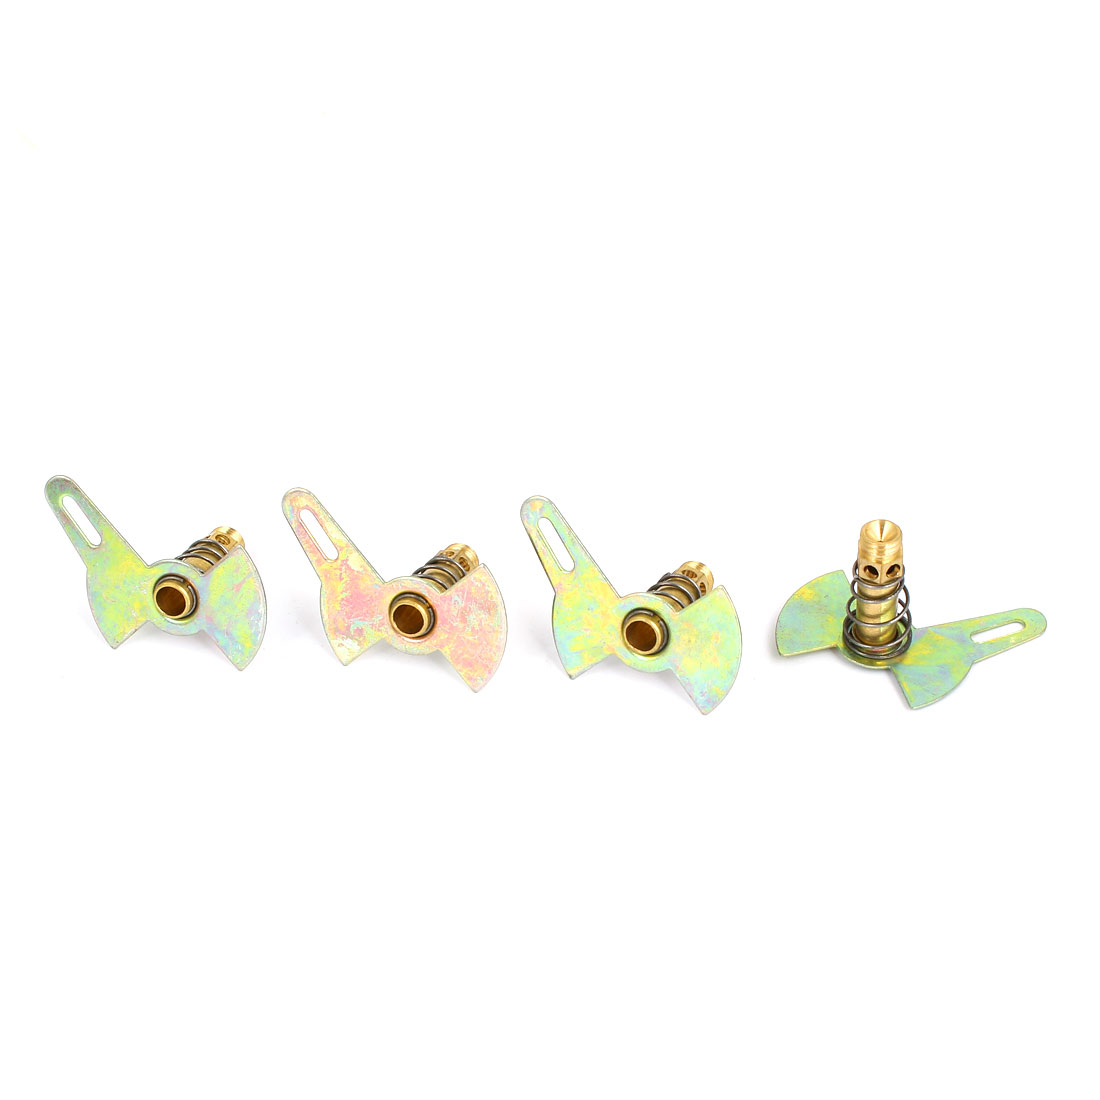 Liquefied Natural Gas Stove Burner Cooker Single Leaf Nozzle Bronze Tone 4Pcs